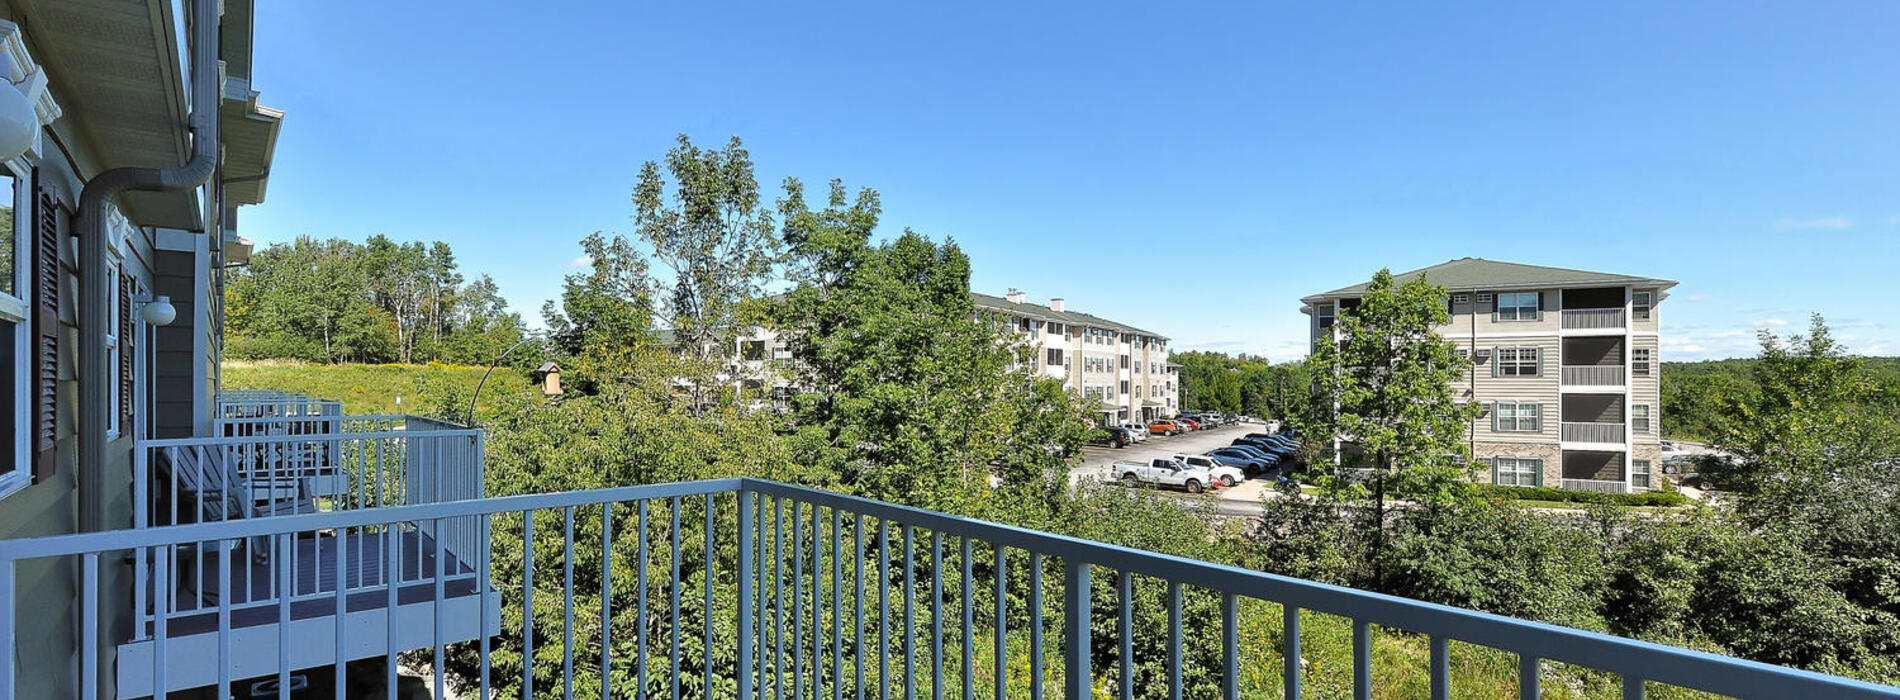 Apartments for rent in duluth mn boulder ridge home - 2 bedroom apartments for rent in duluth mn ...